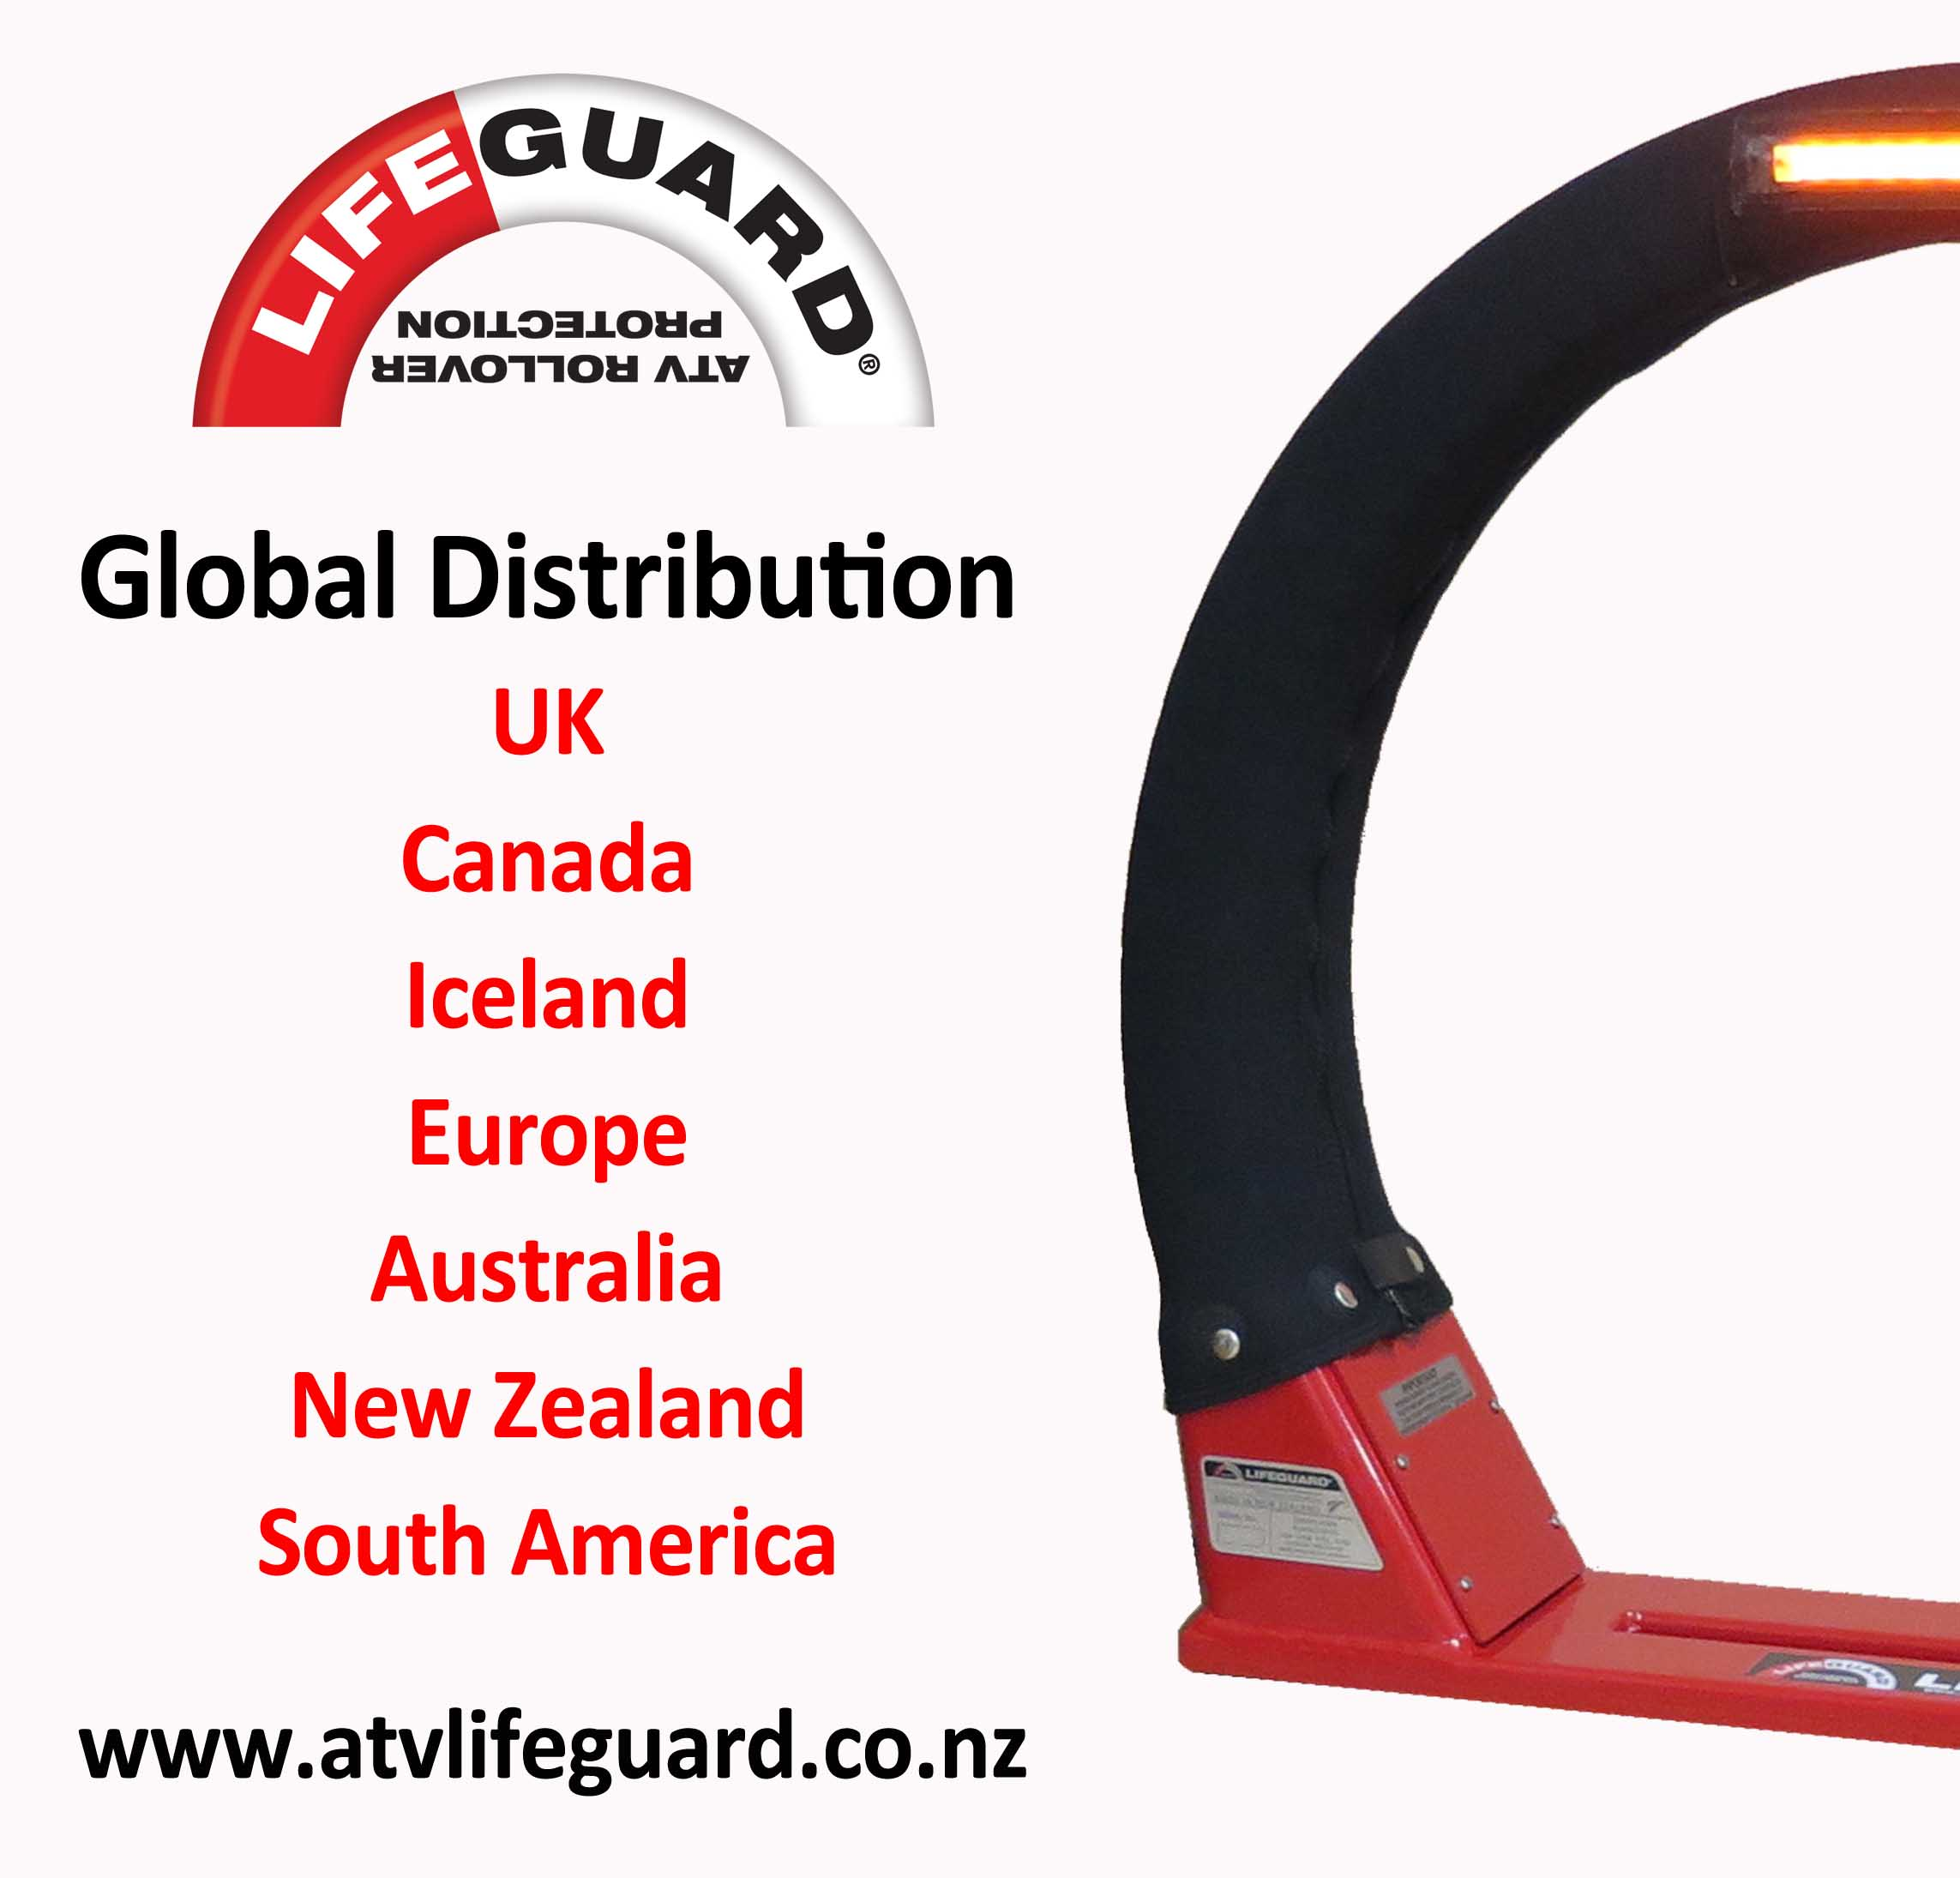 ATV Lifeguard - The ATV LifeGuard Goes Global